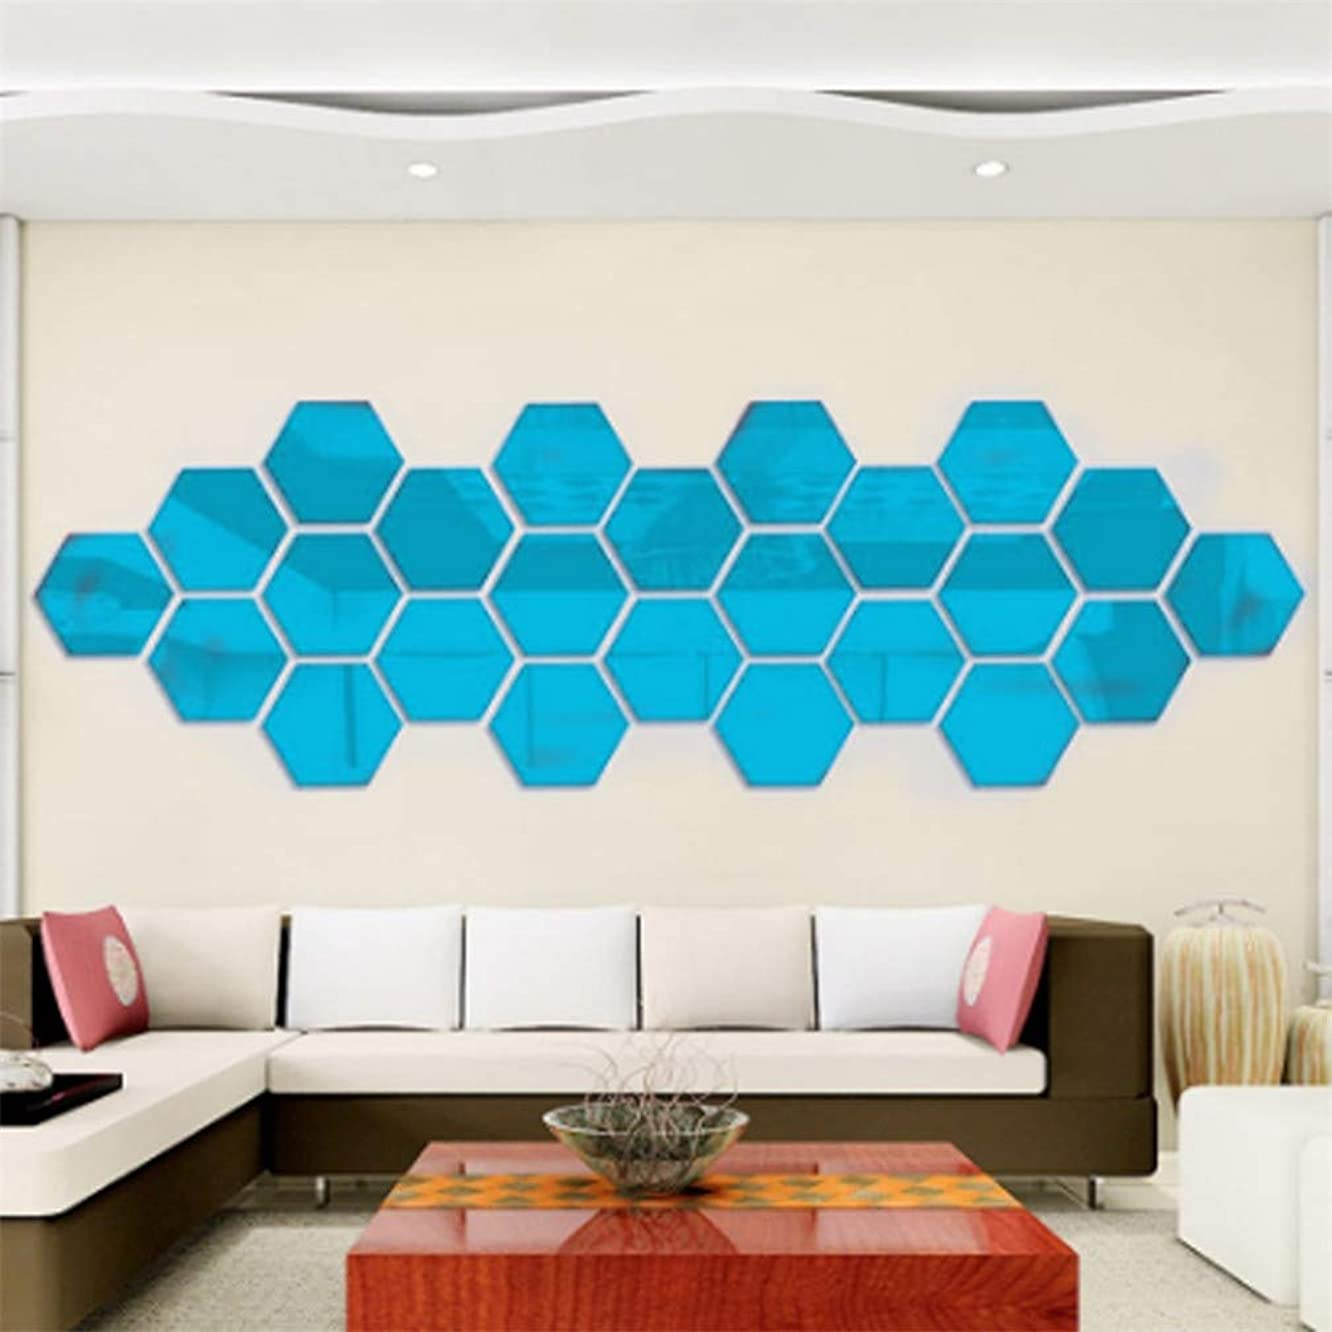 3D Hexagon Mirror Wall Stickers Decoration, 12 PCS Removable DIY Acrylic Wall Stickers Geometric Mirror Art, Self Adhesive Plastic Mirror Tiles Home Living Room Bedroom Wedding Room Office (Blue)